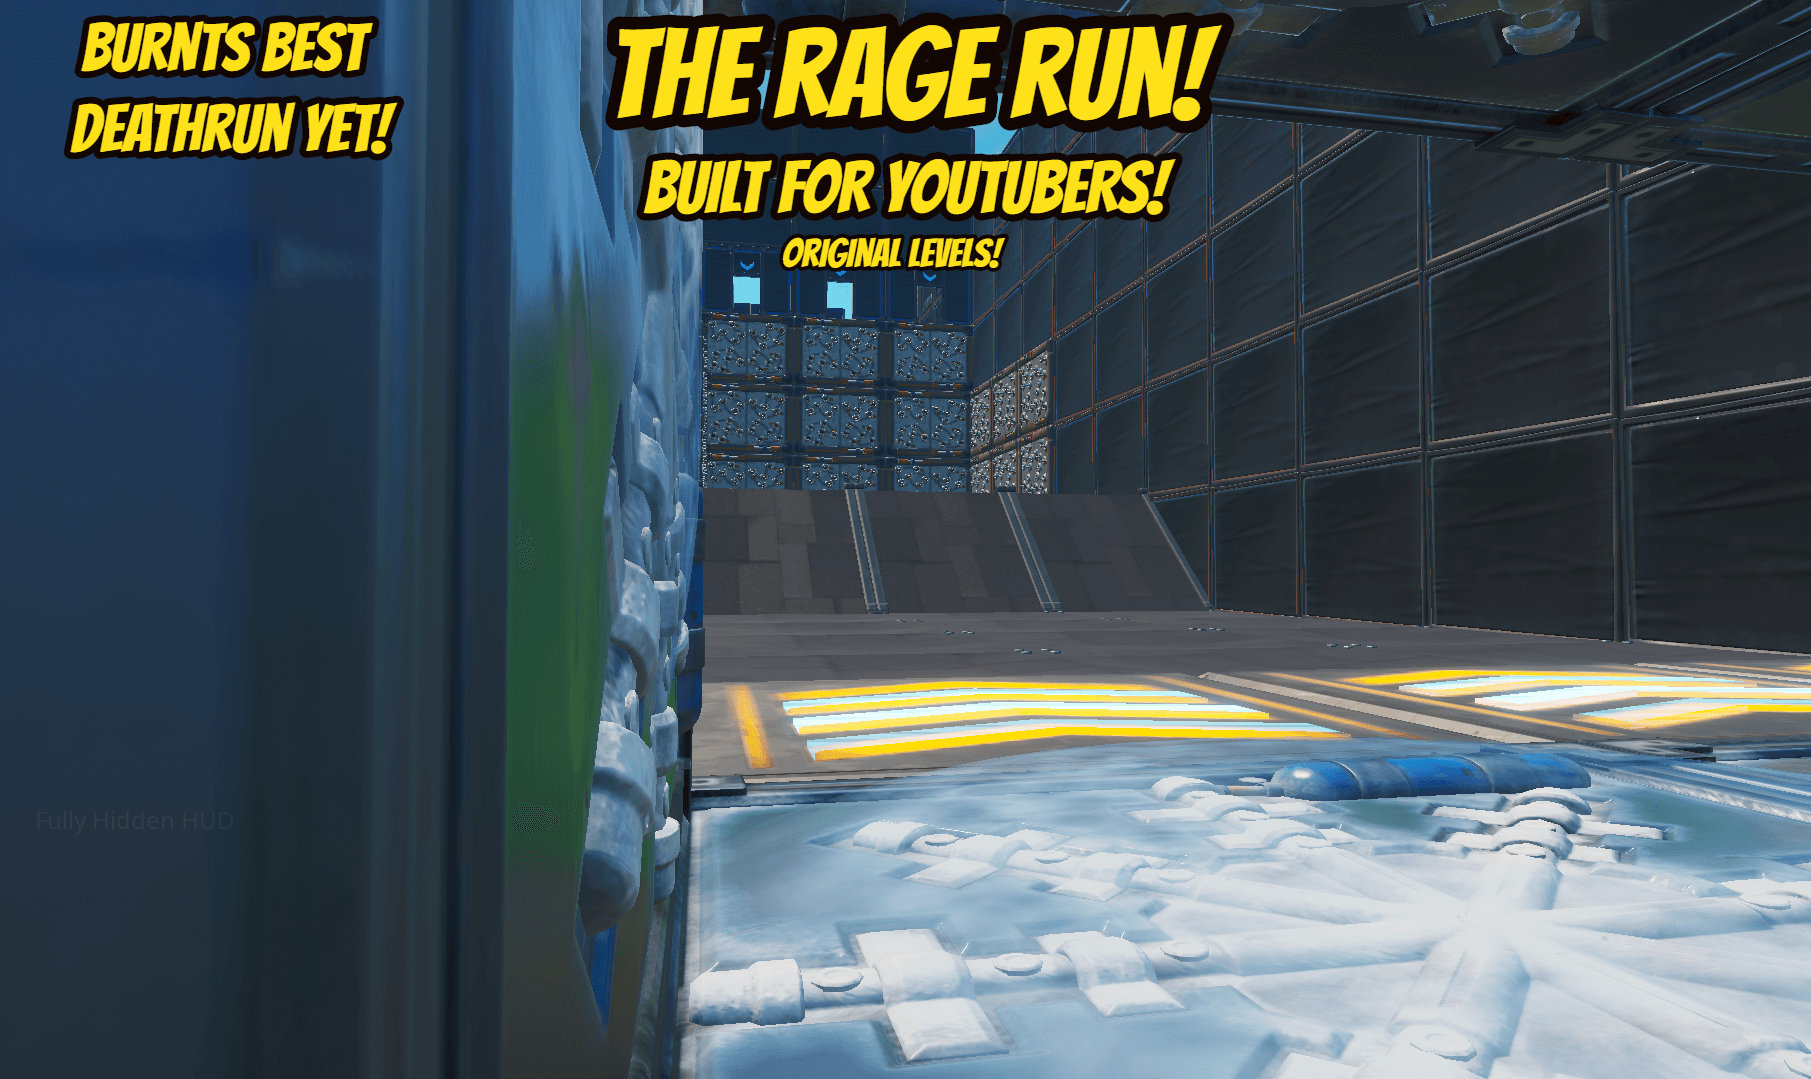 THE RAGE RUN!